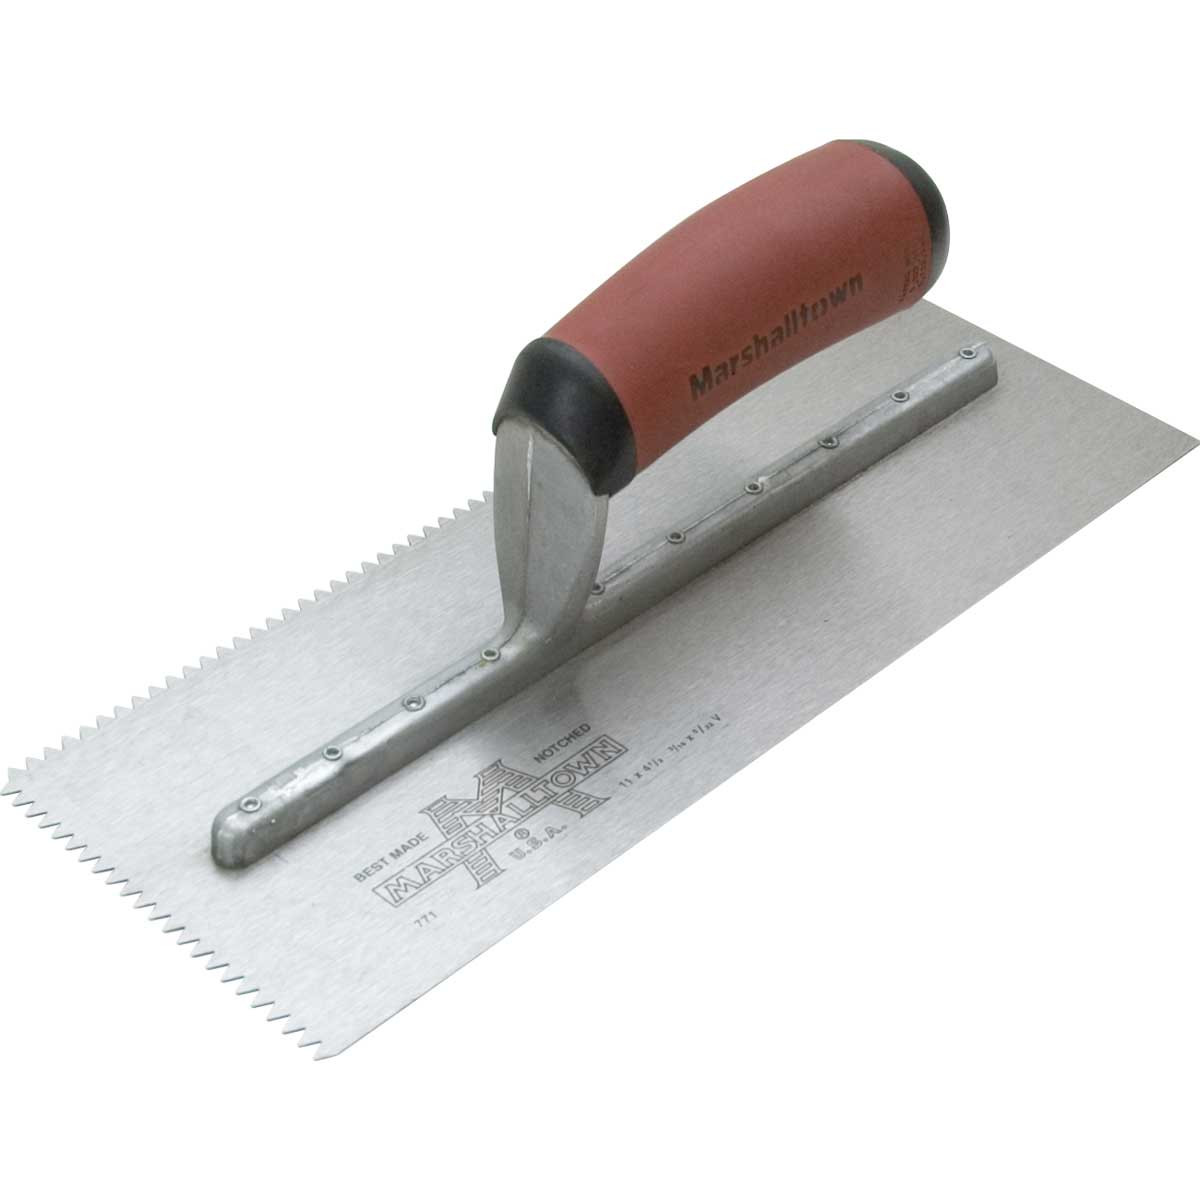 Marshalltown Notched Trowel wall